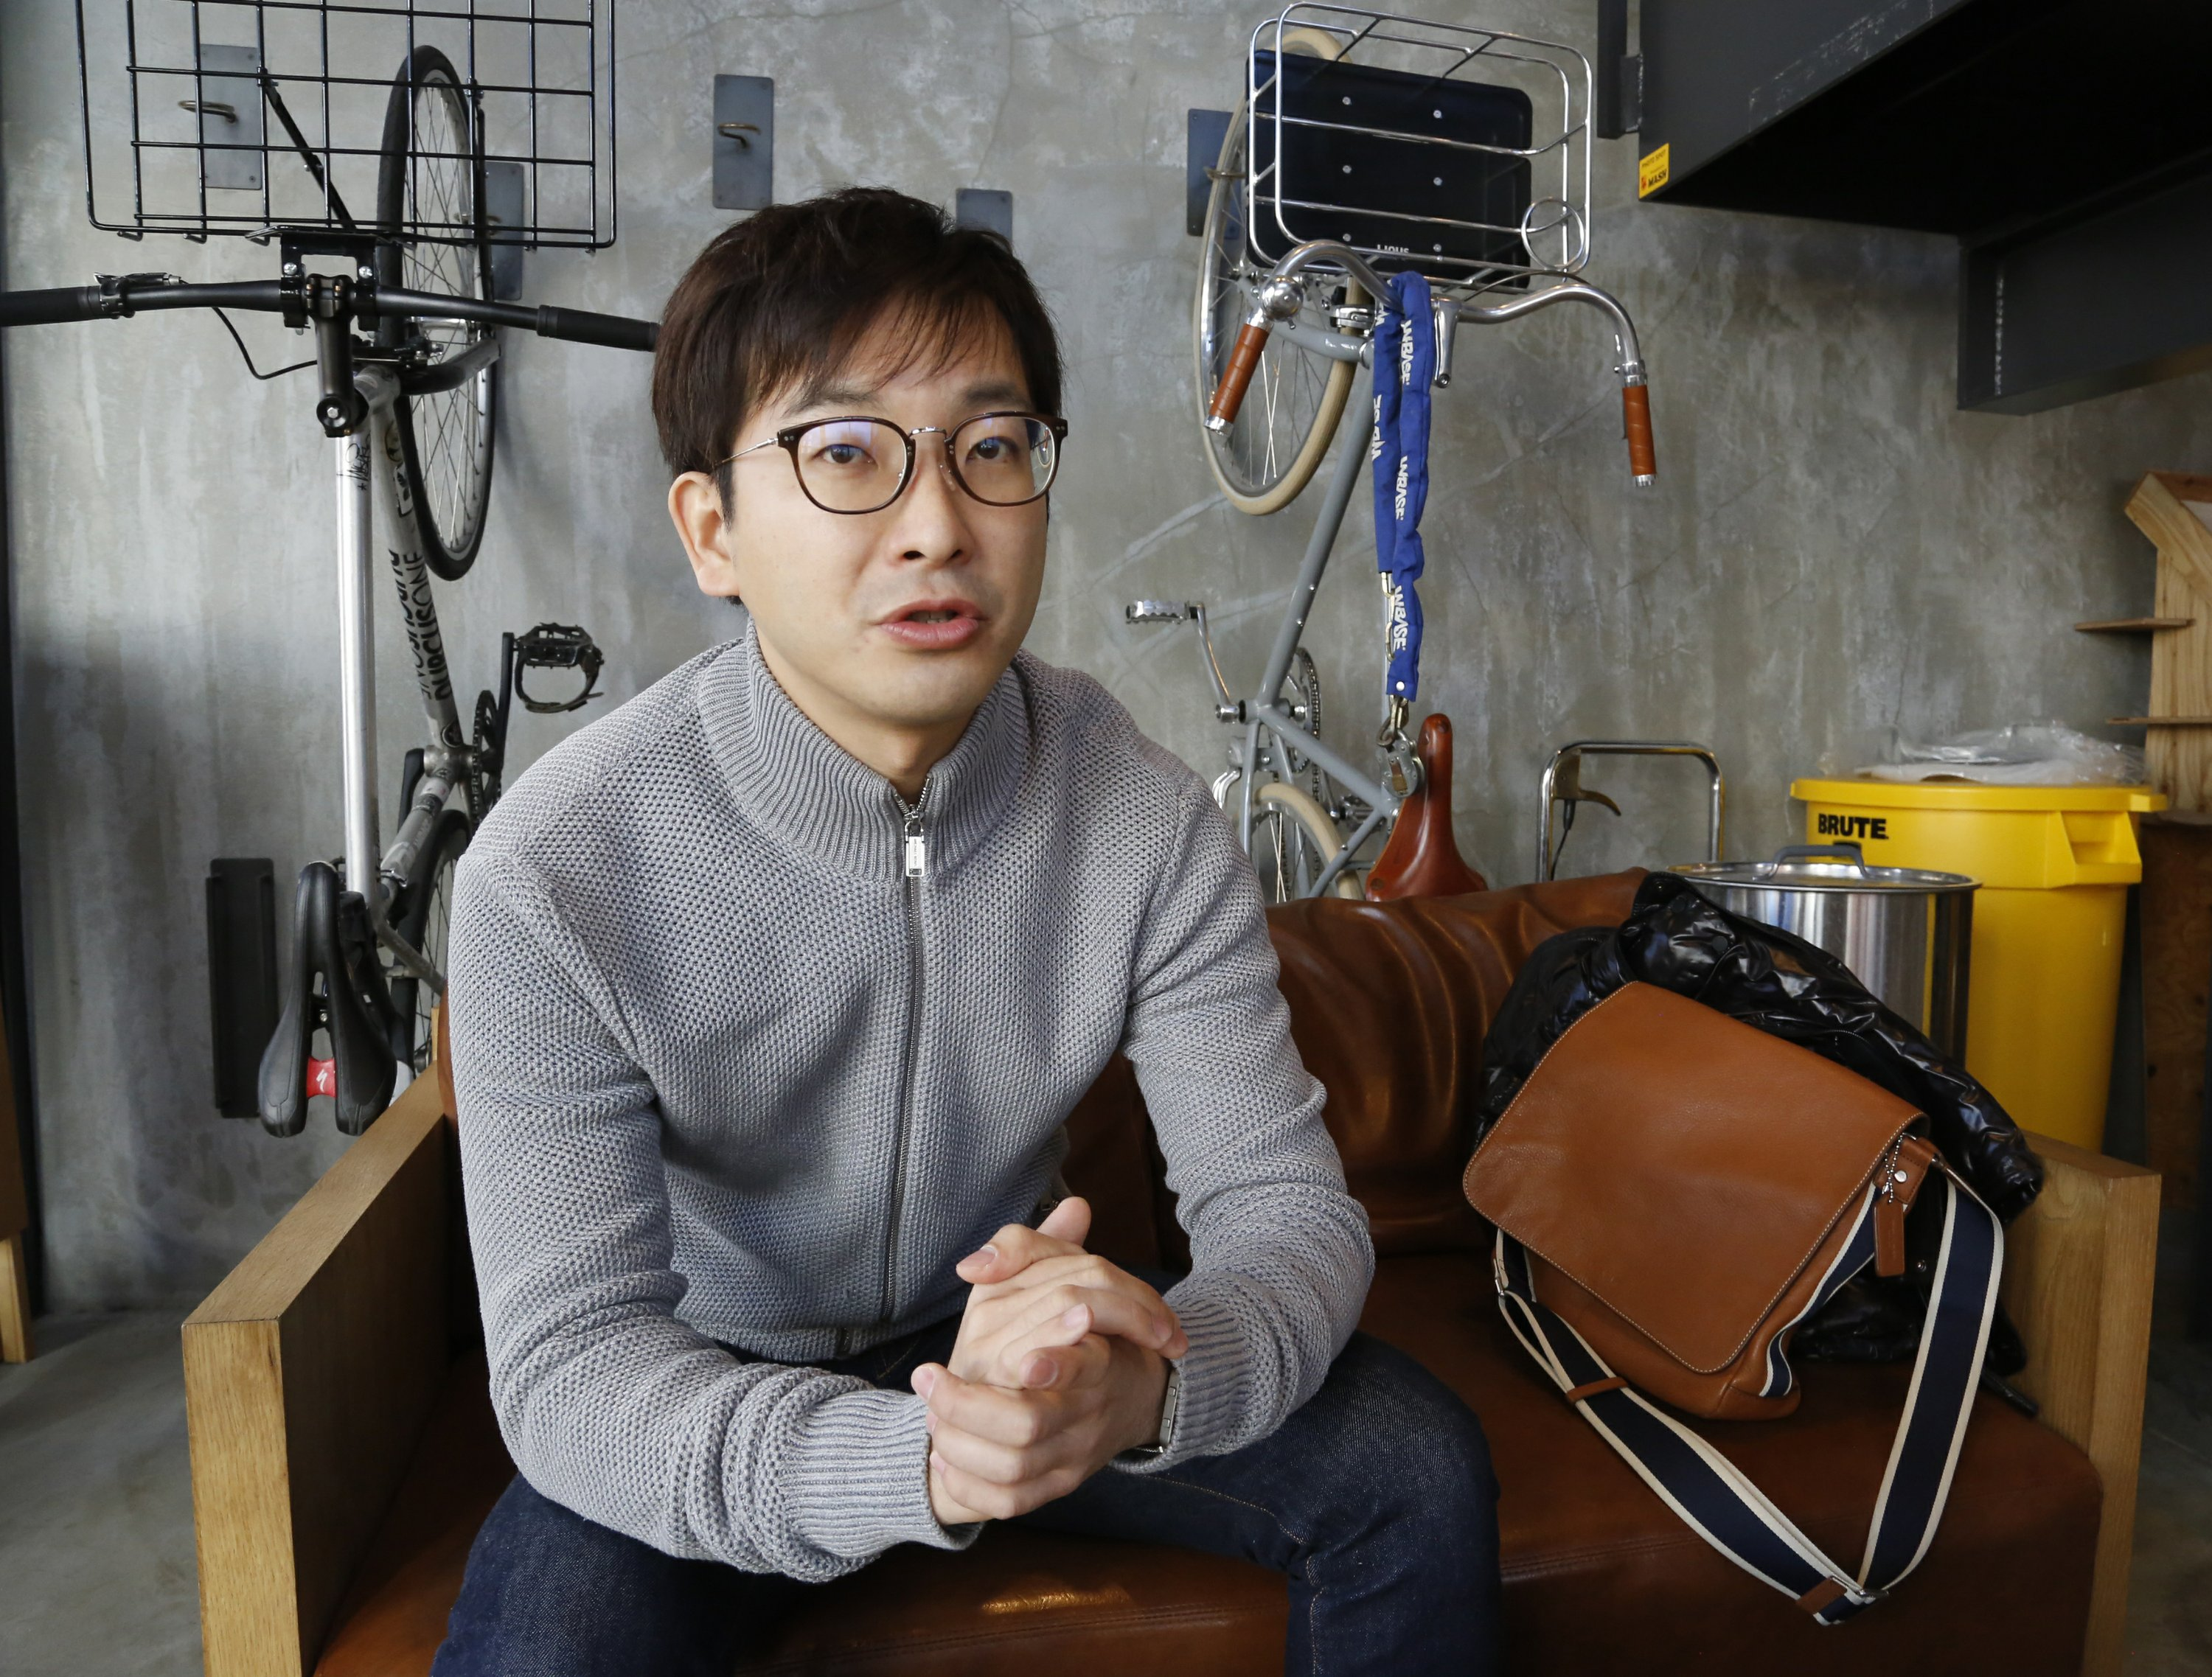 Startups in Japan seeing ample cash but lack of innovators